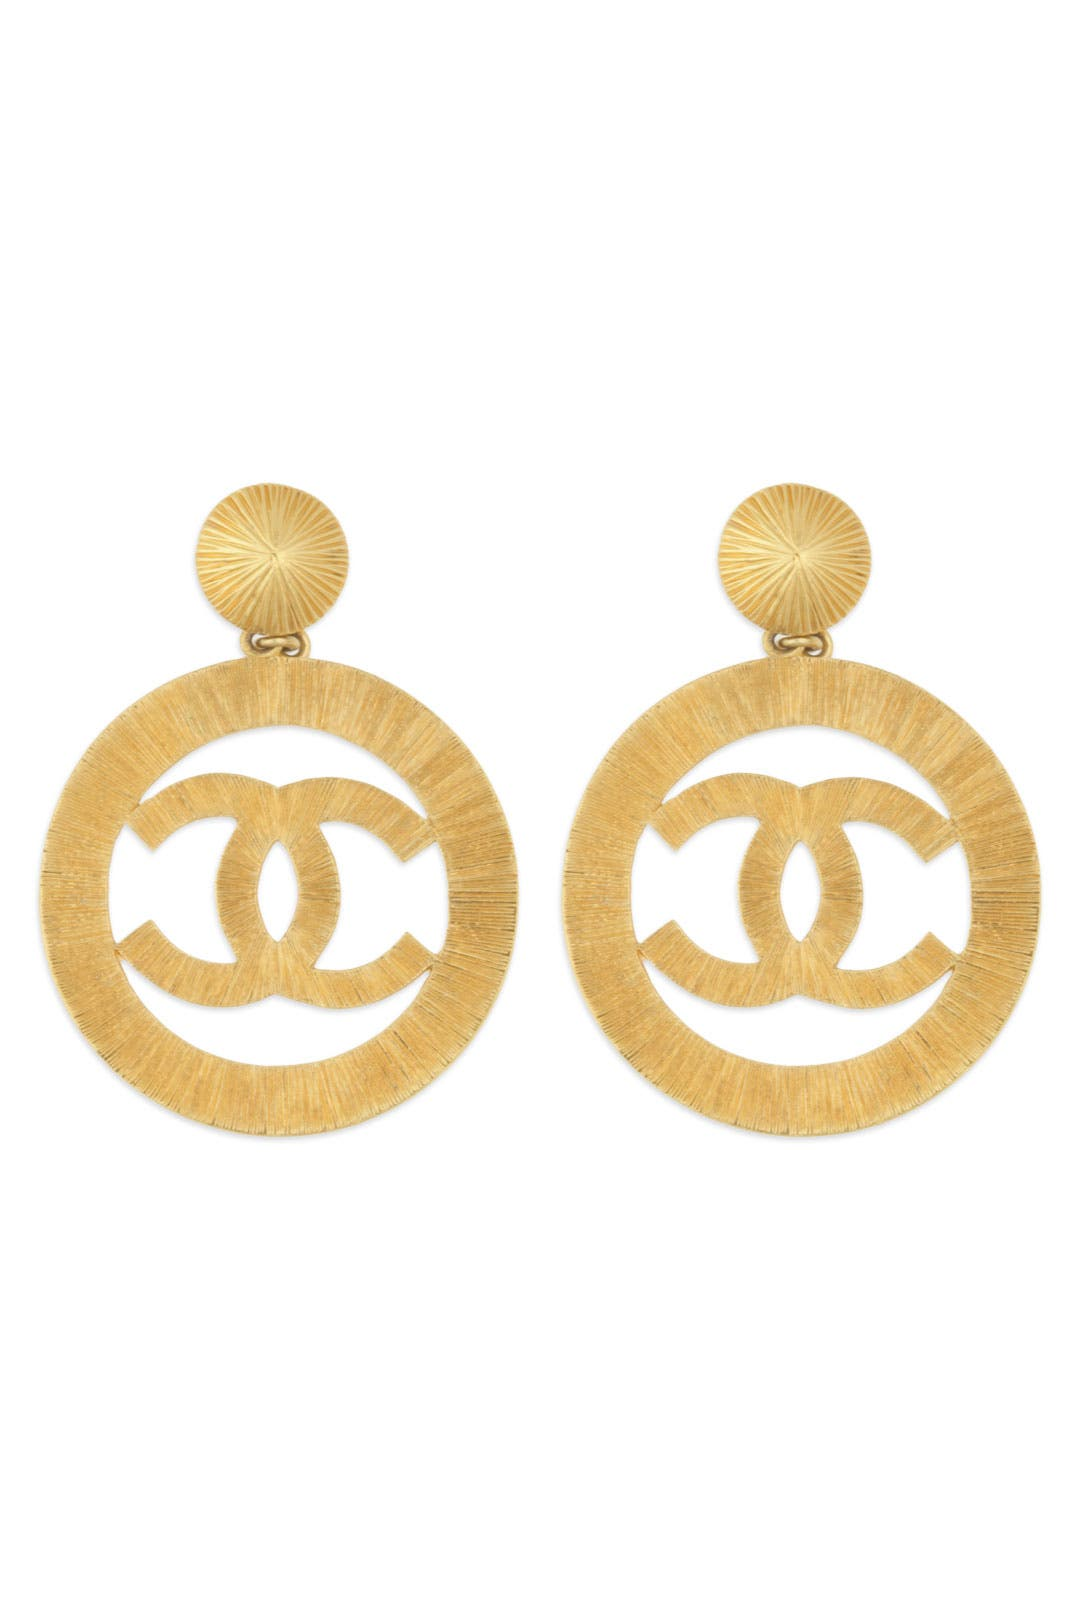 Vintage Chanel CC Cambon Earrings by WGACA Vintage